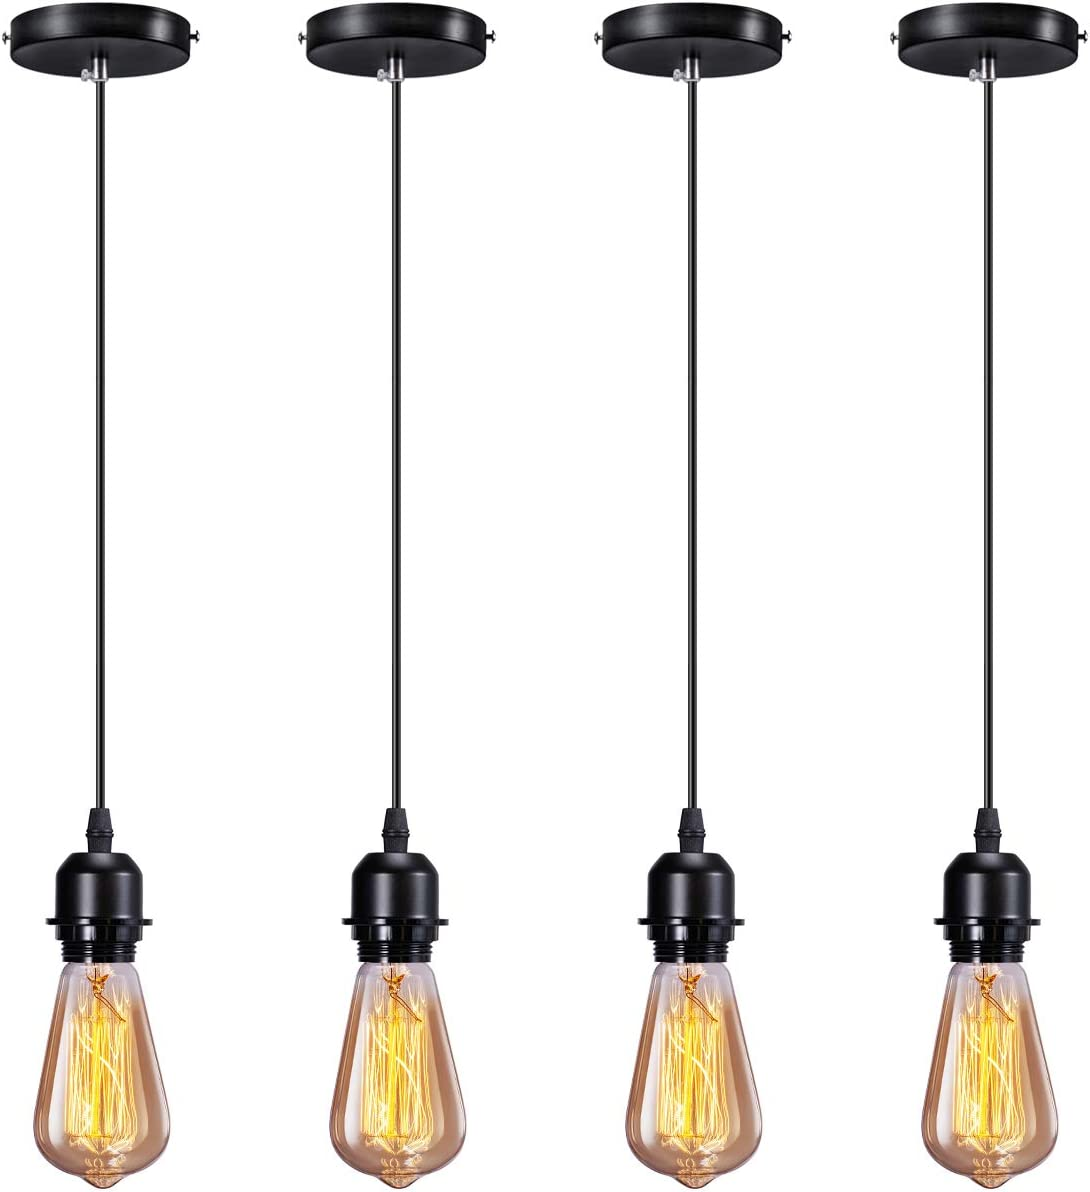 Elibbren Industrial Mini Pendant Light Kit E26 E27 Base Edison Vintage Style Black Cord Hanging Light Fixture with UL Lamp Holder for Kitchen Bedroom Home Corridor Studio Office 4 Pack